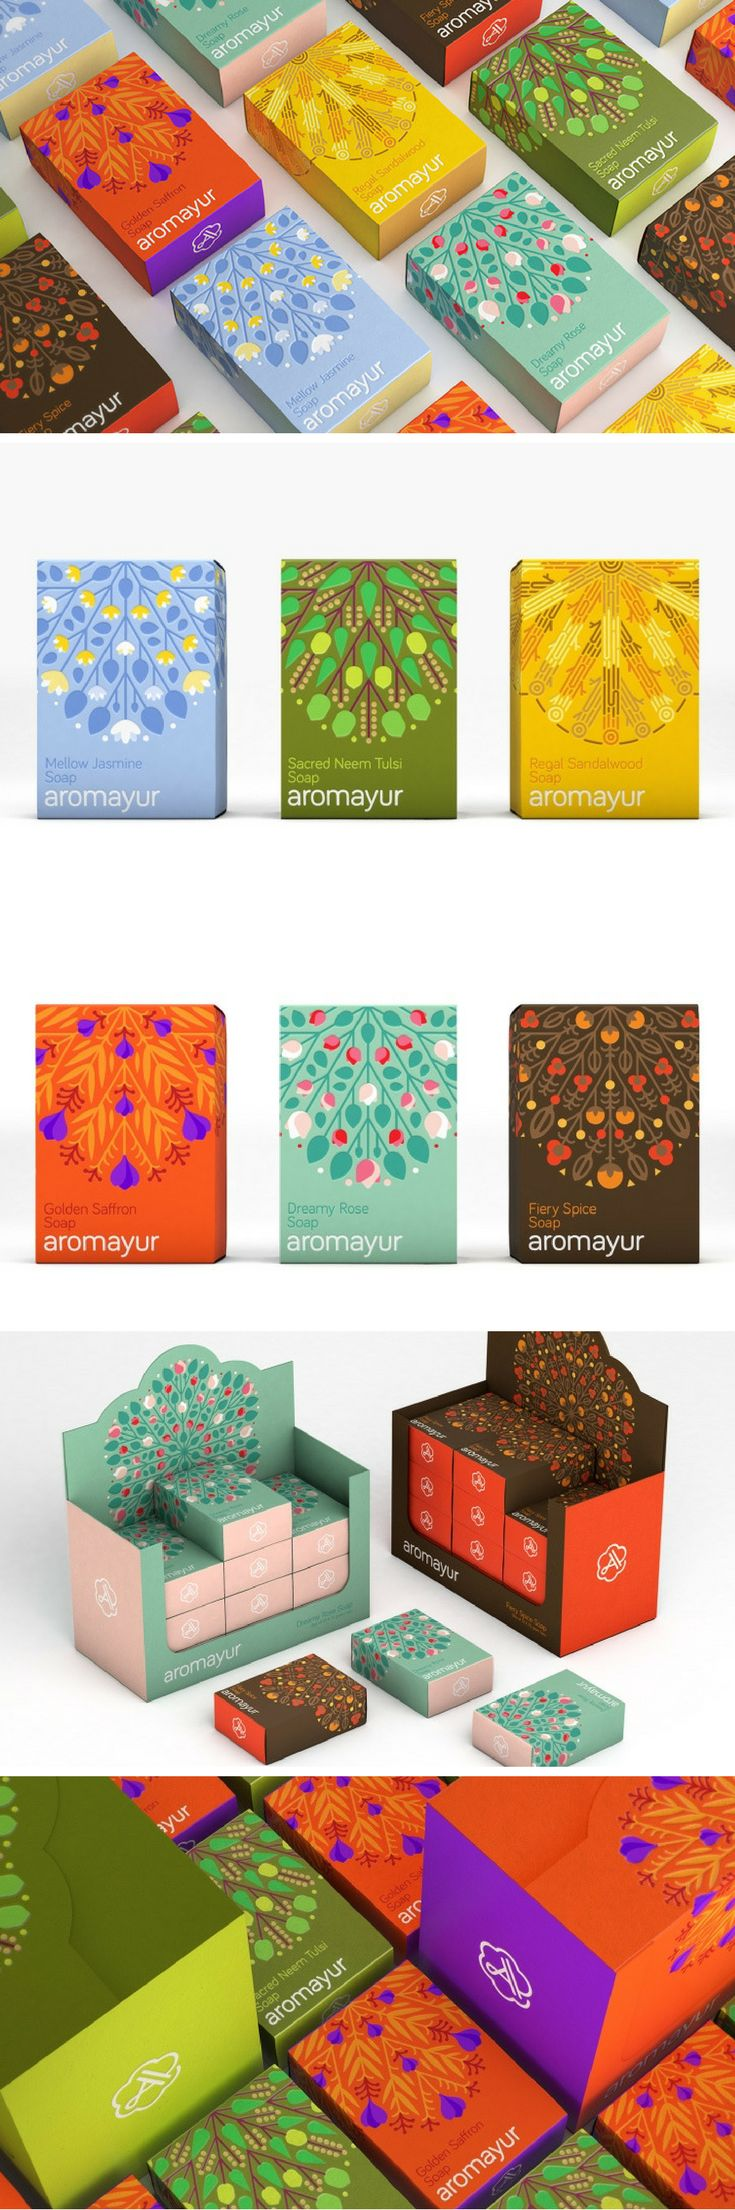 Aromayur identity & packaging by Zooscope